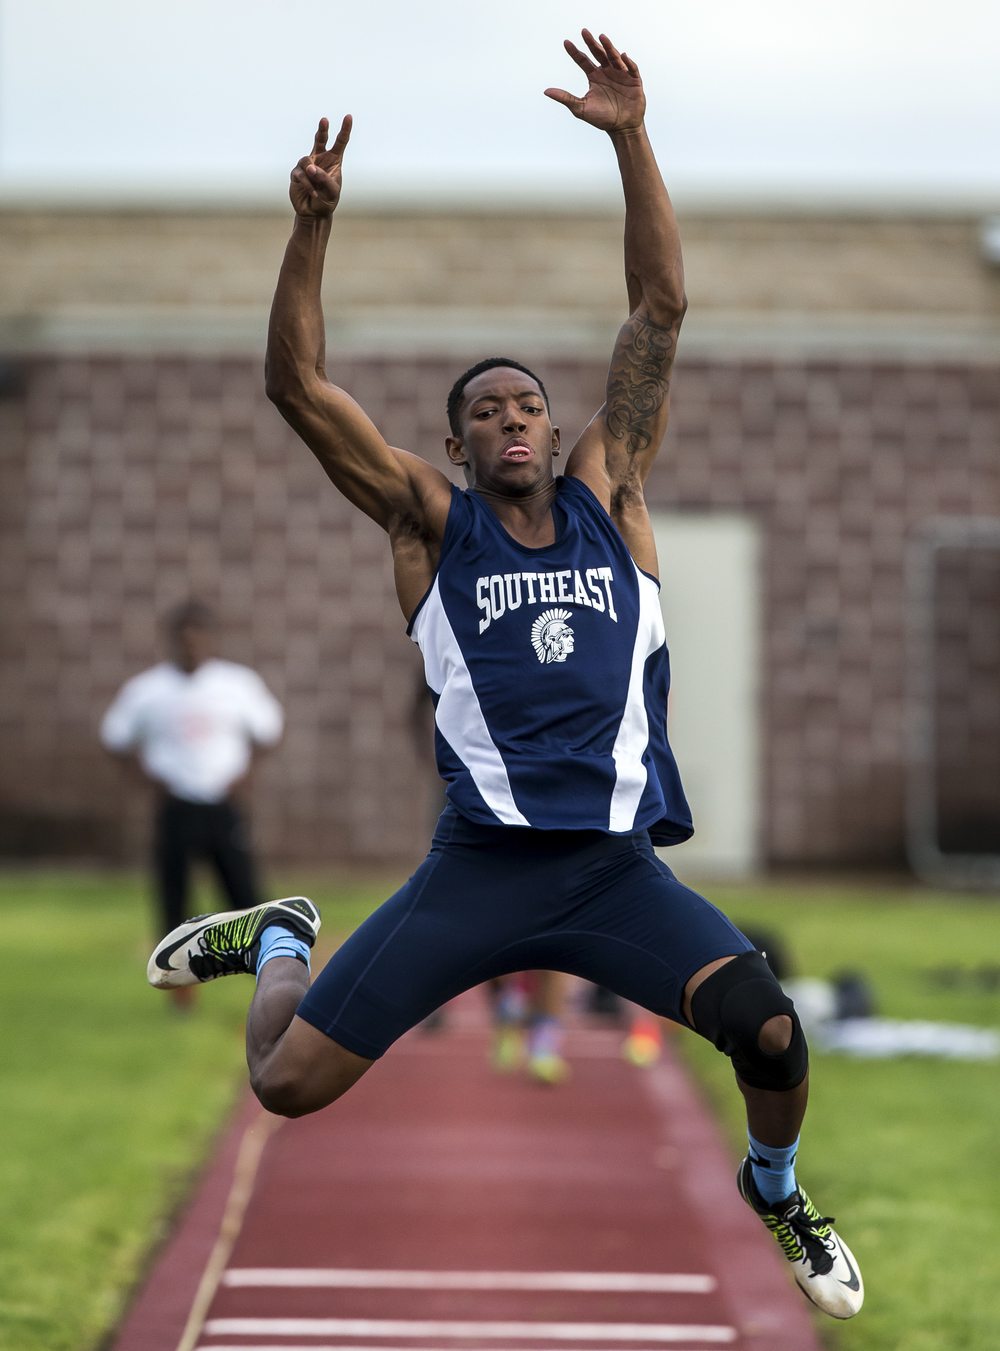 Southeast's Sabree Bakari won the Boys Long Jump with a 21-03.50 during the Boys Central State Eight Track & Field Meet at Glenwood High School, Friday, May 15, 2015, in Chatham, Ill. Justin L. Fowler/The State Journal-Register